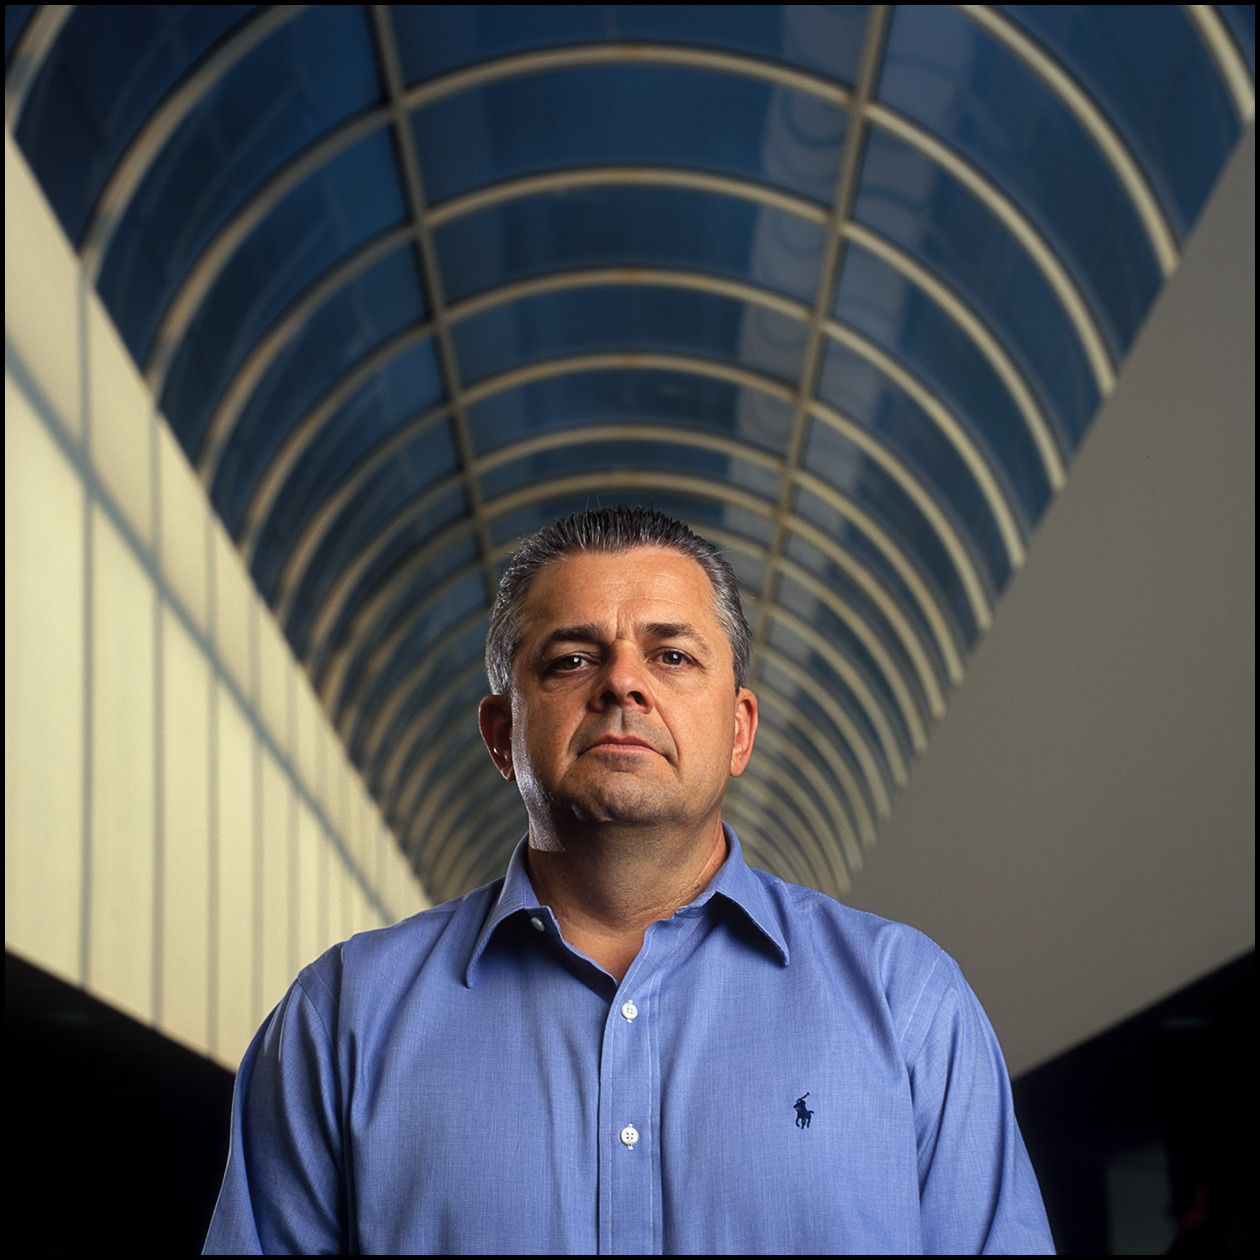 A business portrait of a CIO in a large office atrium.